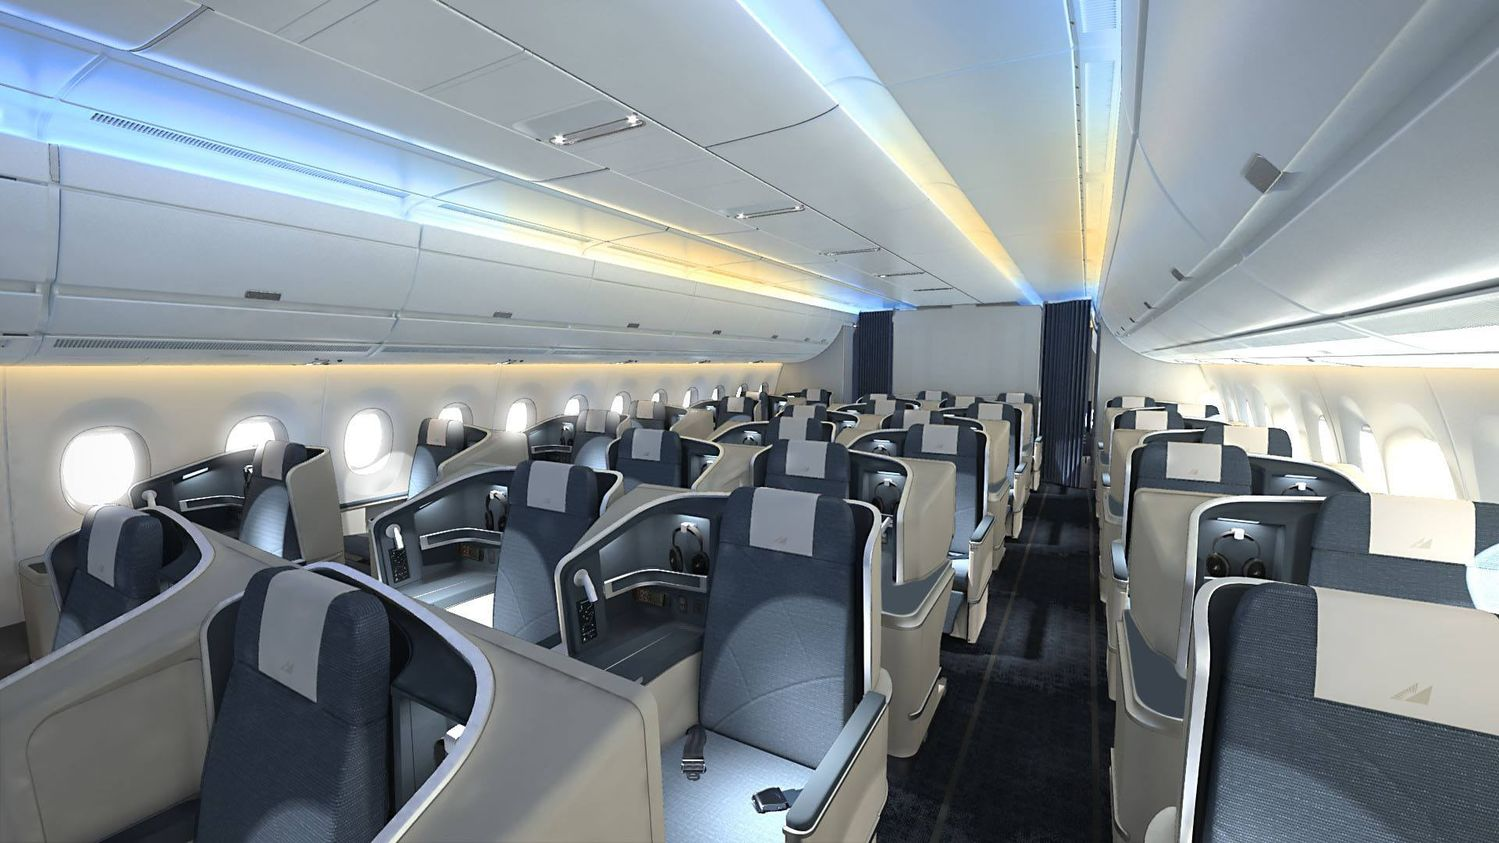 Business Class på Airbus A350-flyene fra Philippine Airlines – fly som Lufthansa nu overtager. Foto: Philippine Airlines